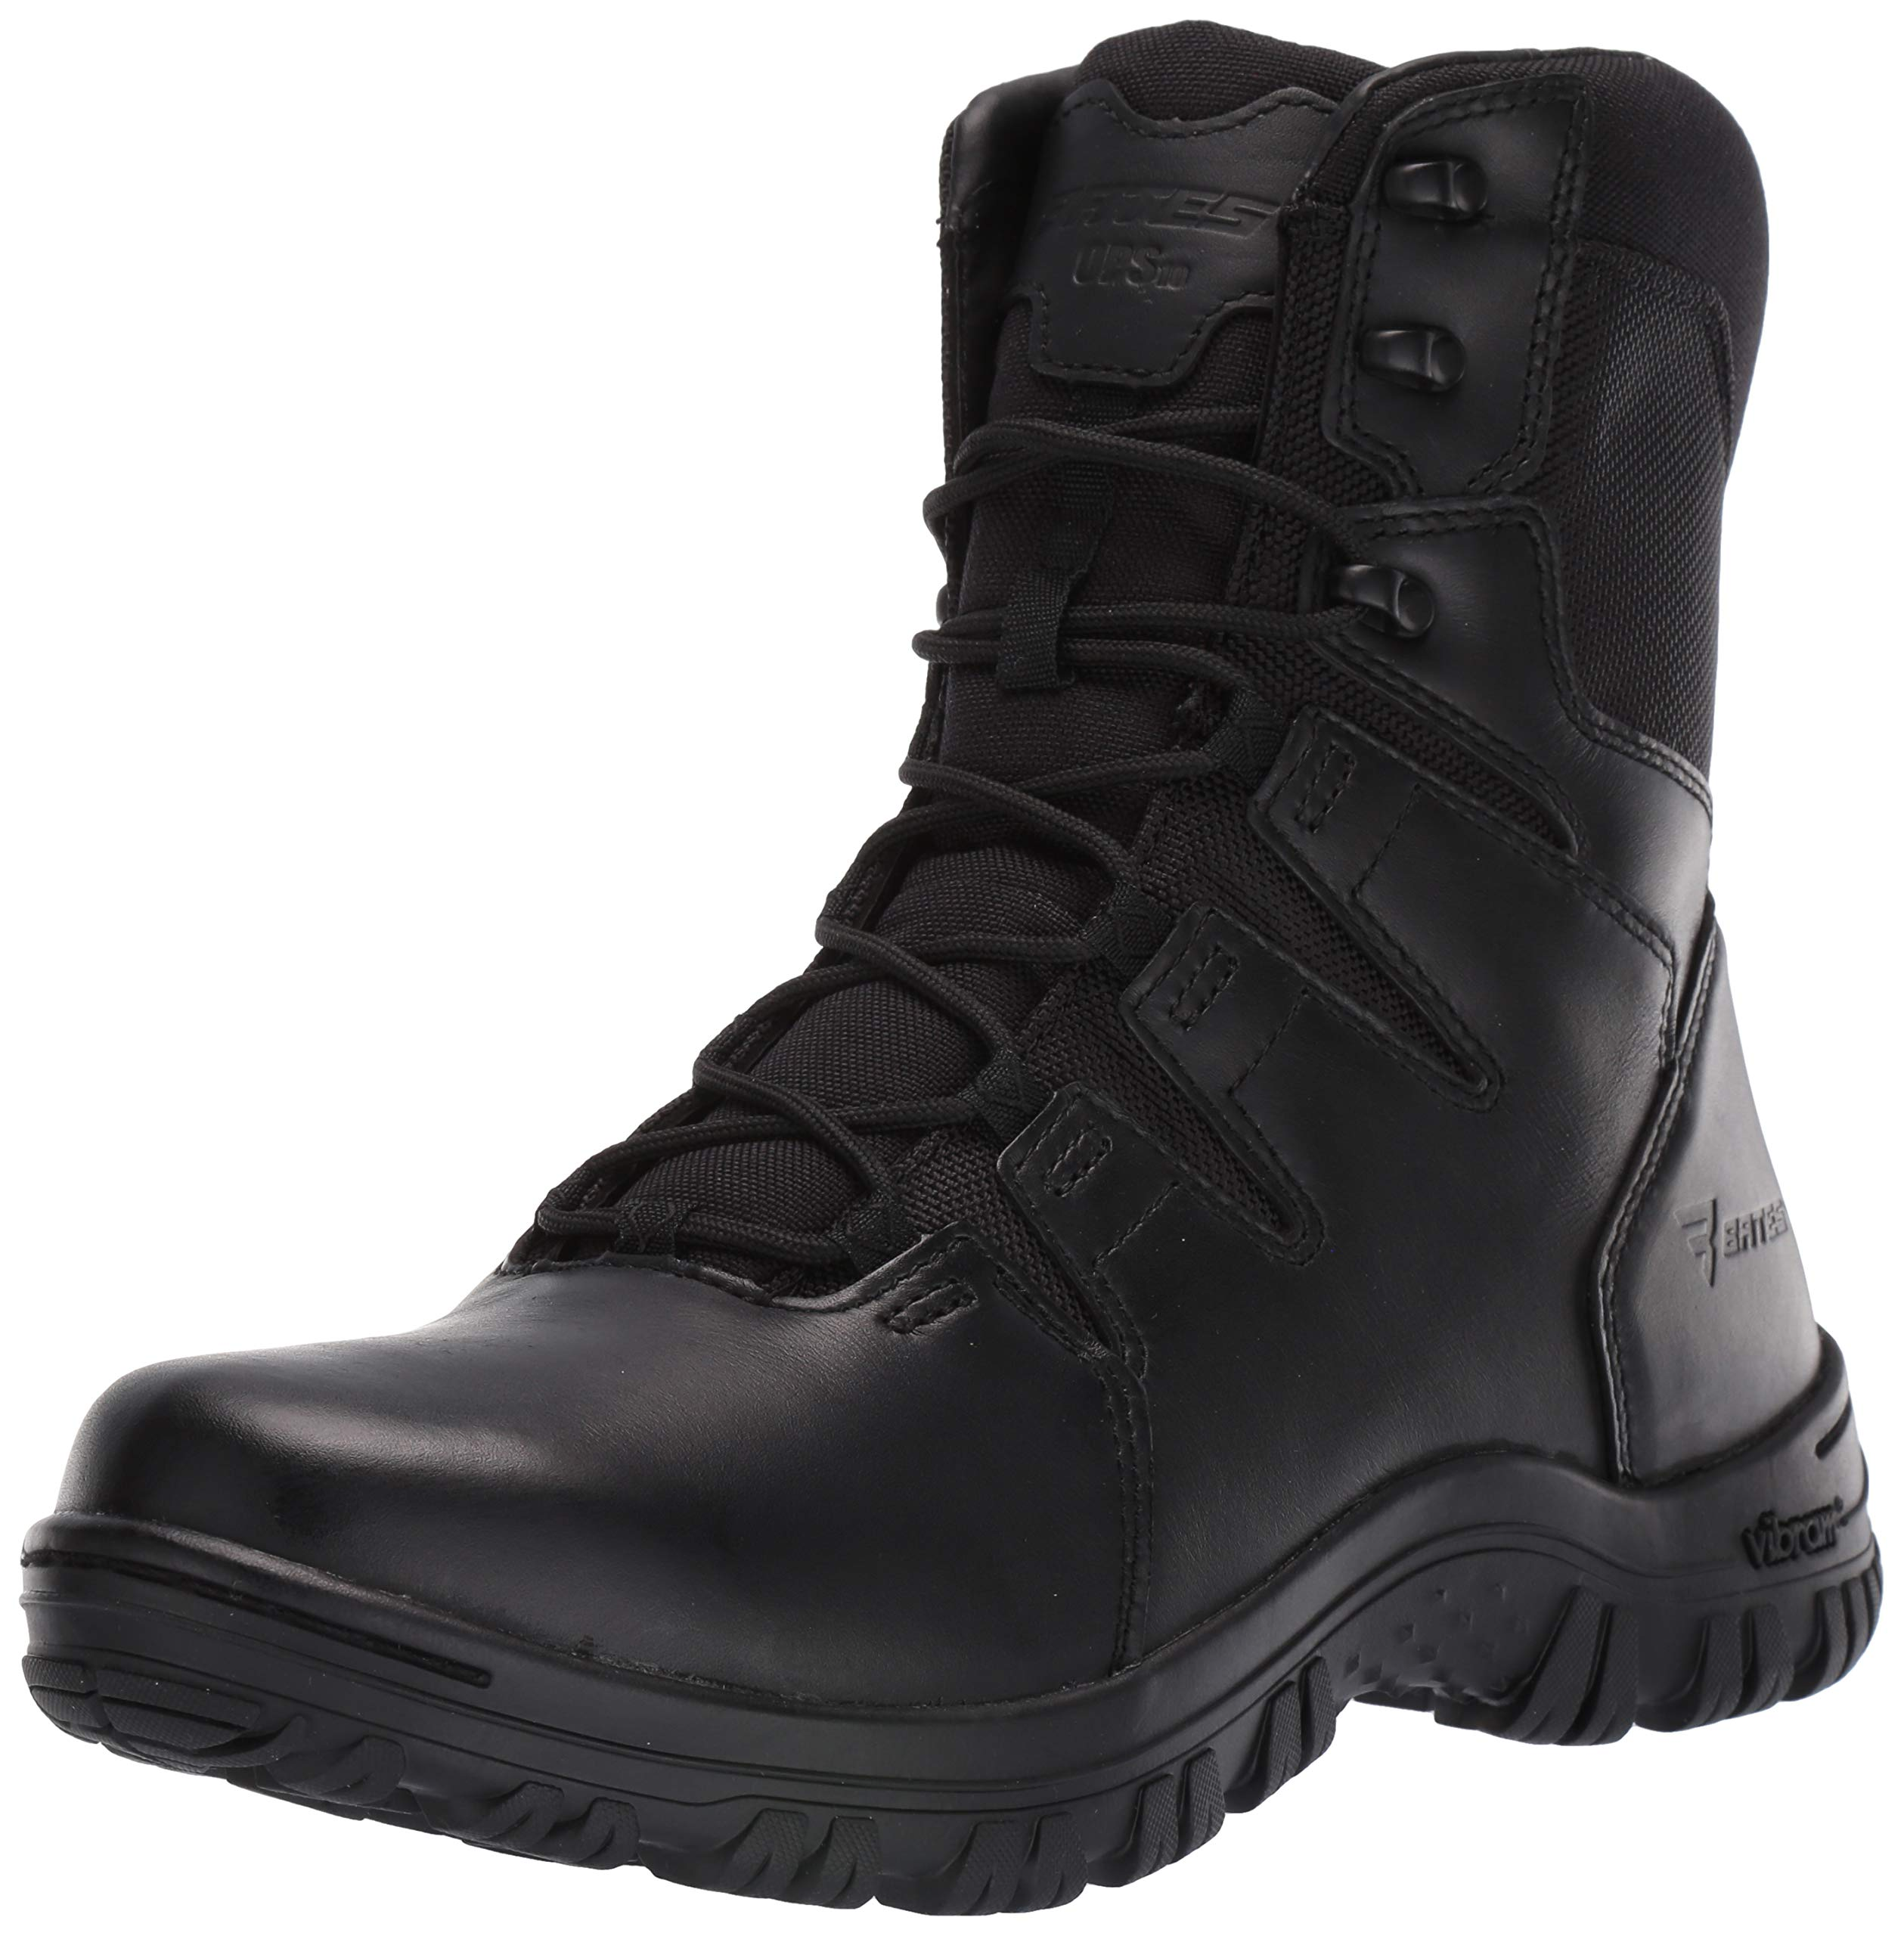 Bates Men's Maneuver Side Zip Fire and Safety Boot, Black, 11.5 Extra Wide US by Bates